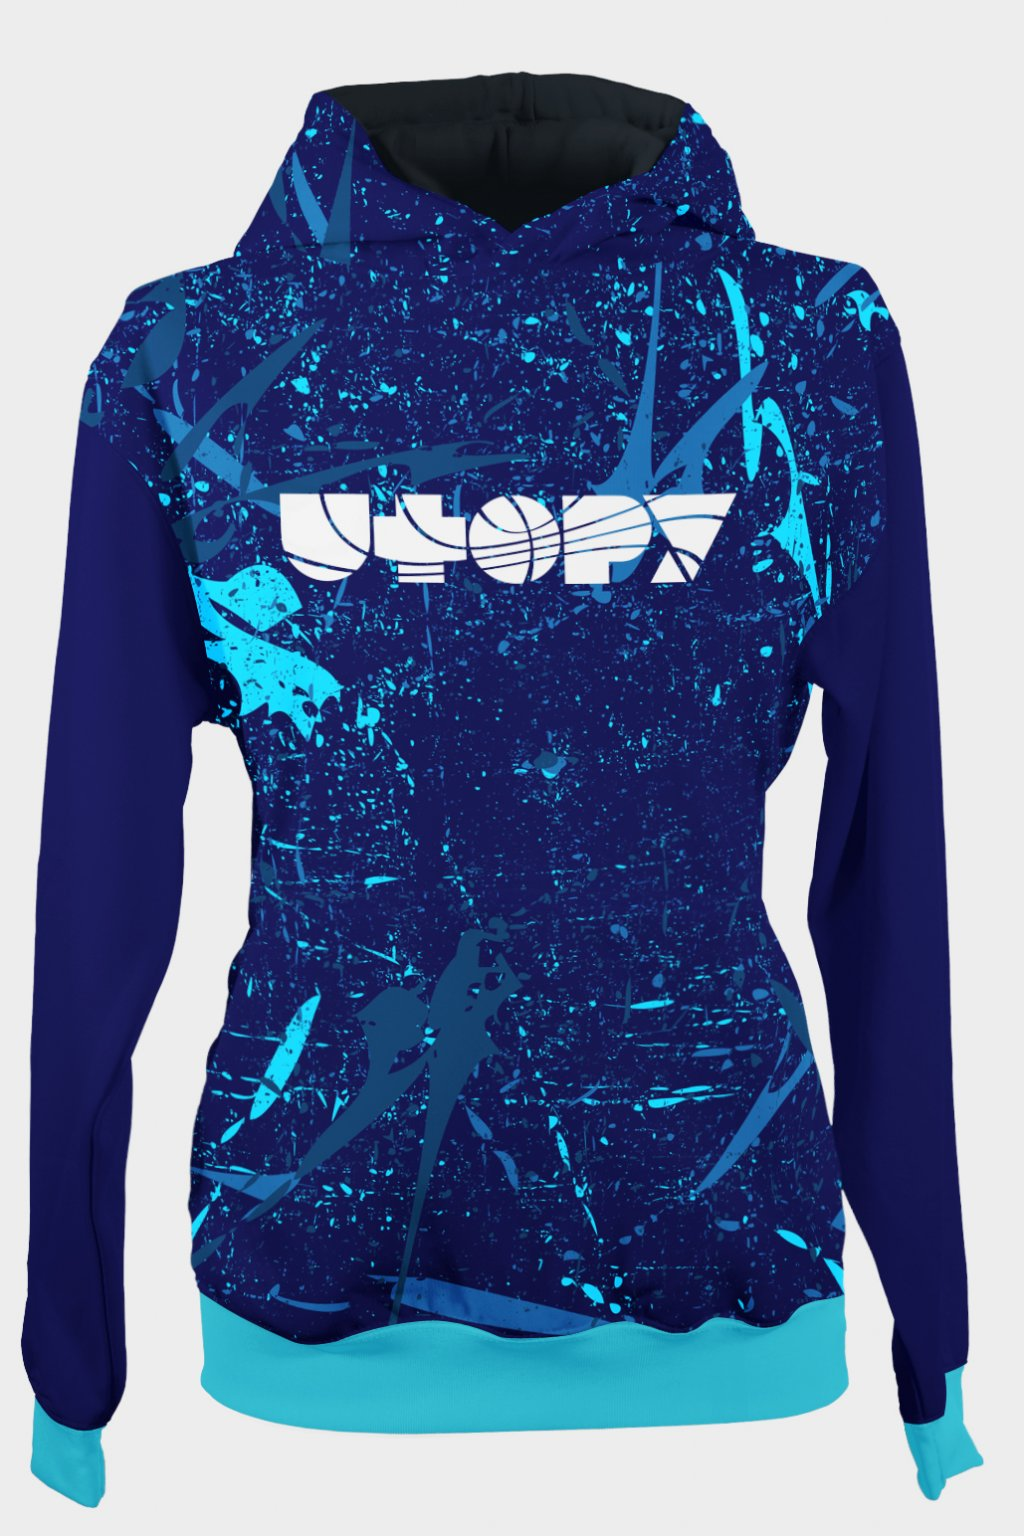 power of blues front hoodie by utopy